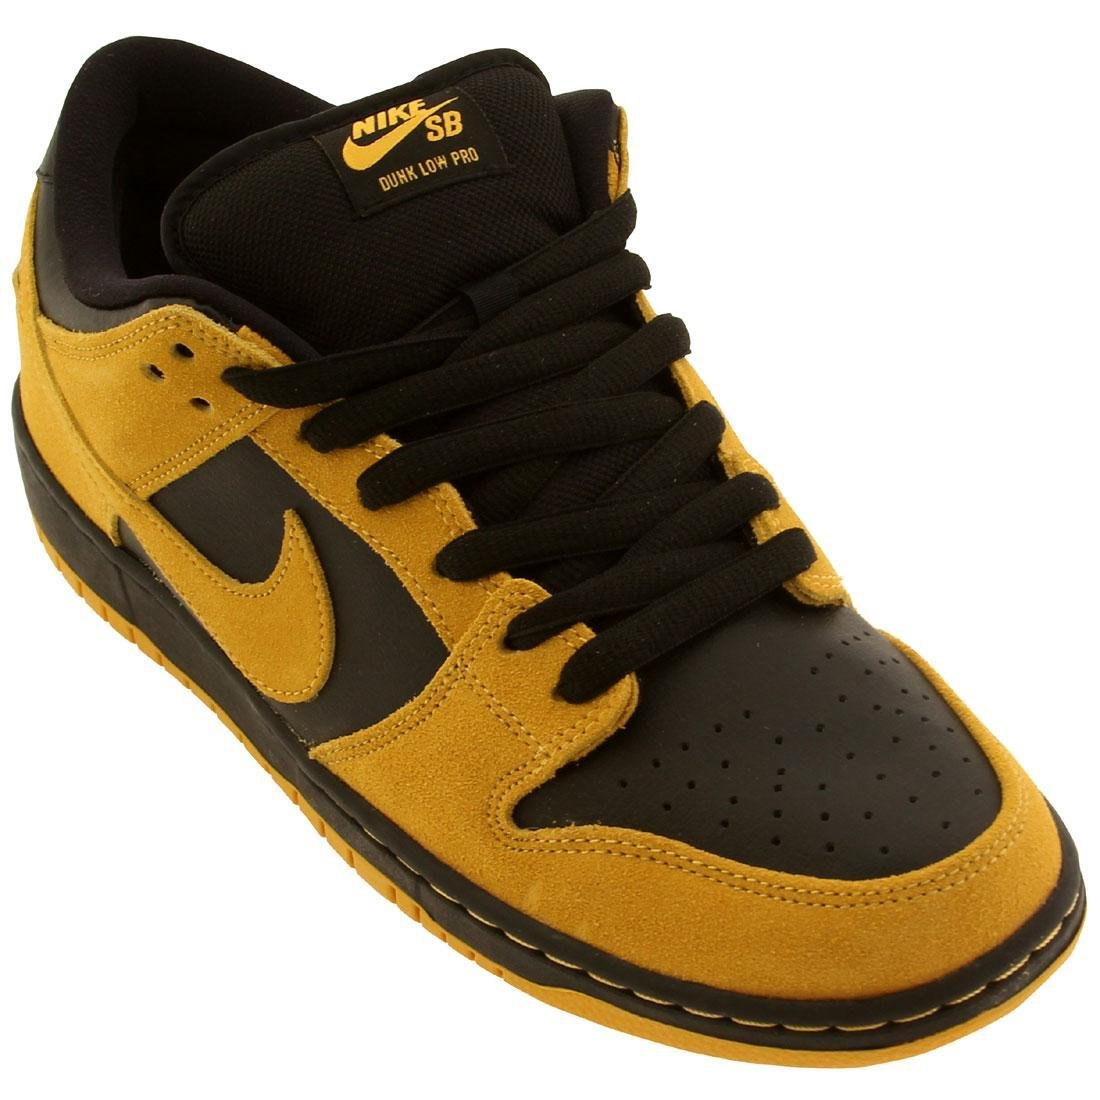 NIKE Skateboard Shoes Dunk Low Pro University Gold/Black  6